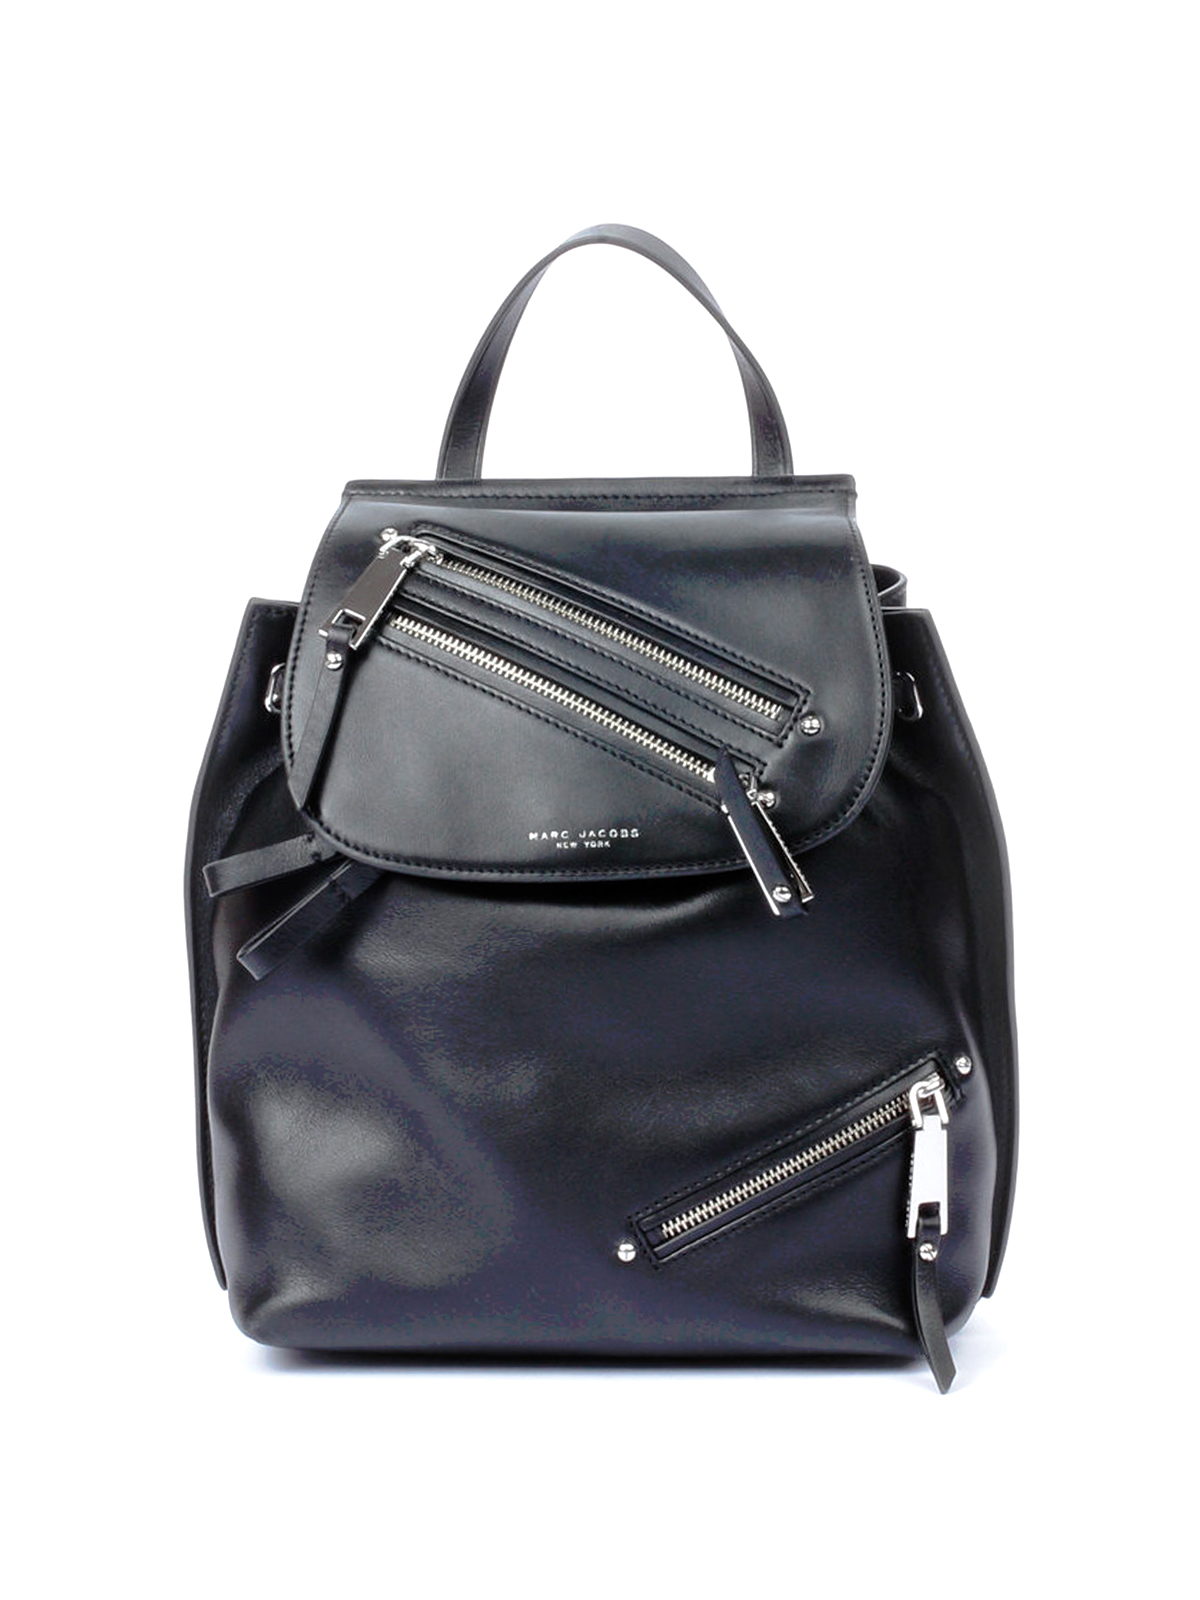 smooth leather multipocket backpack by marc jacobs. Black Bedroom Furniture Sets. Home Design Ideas